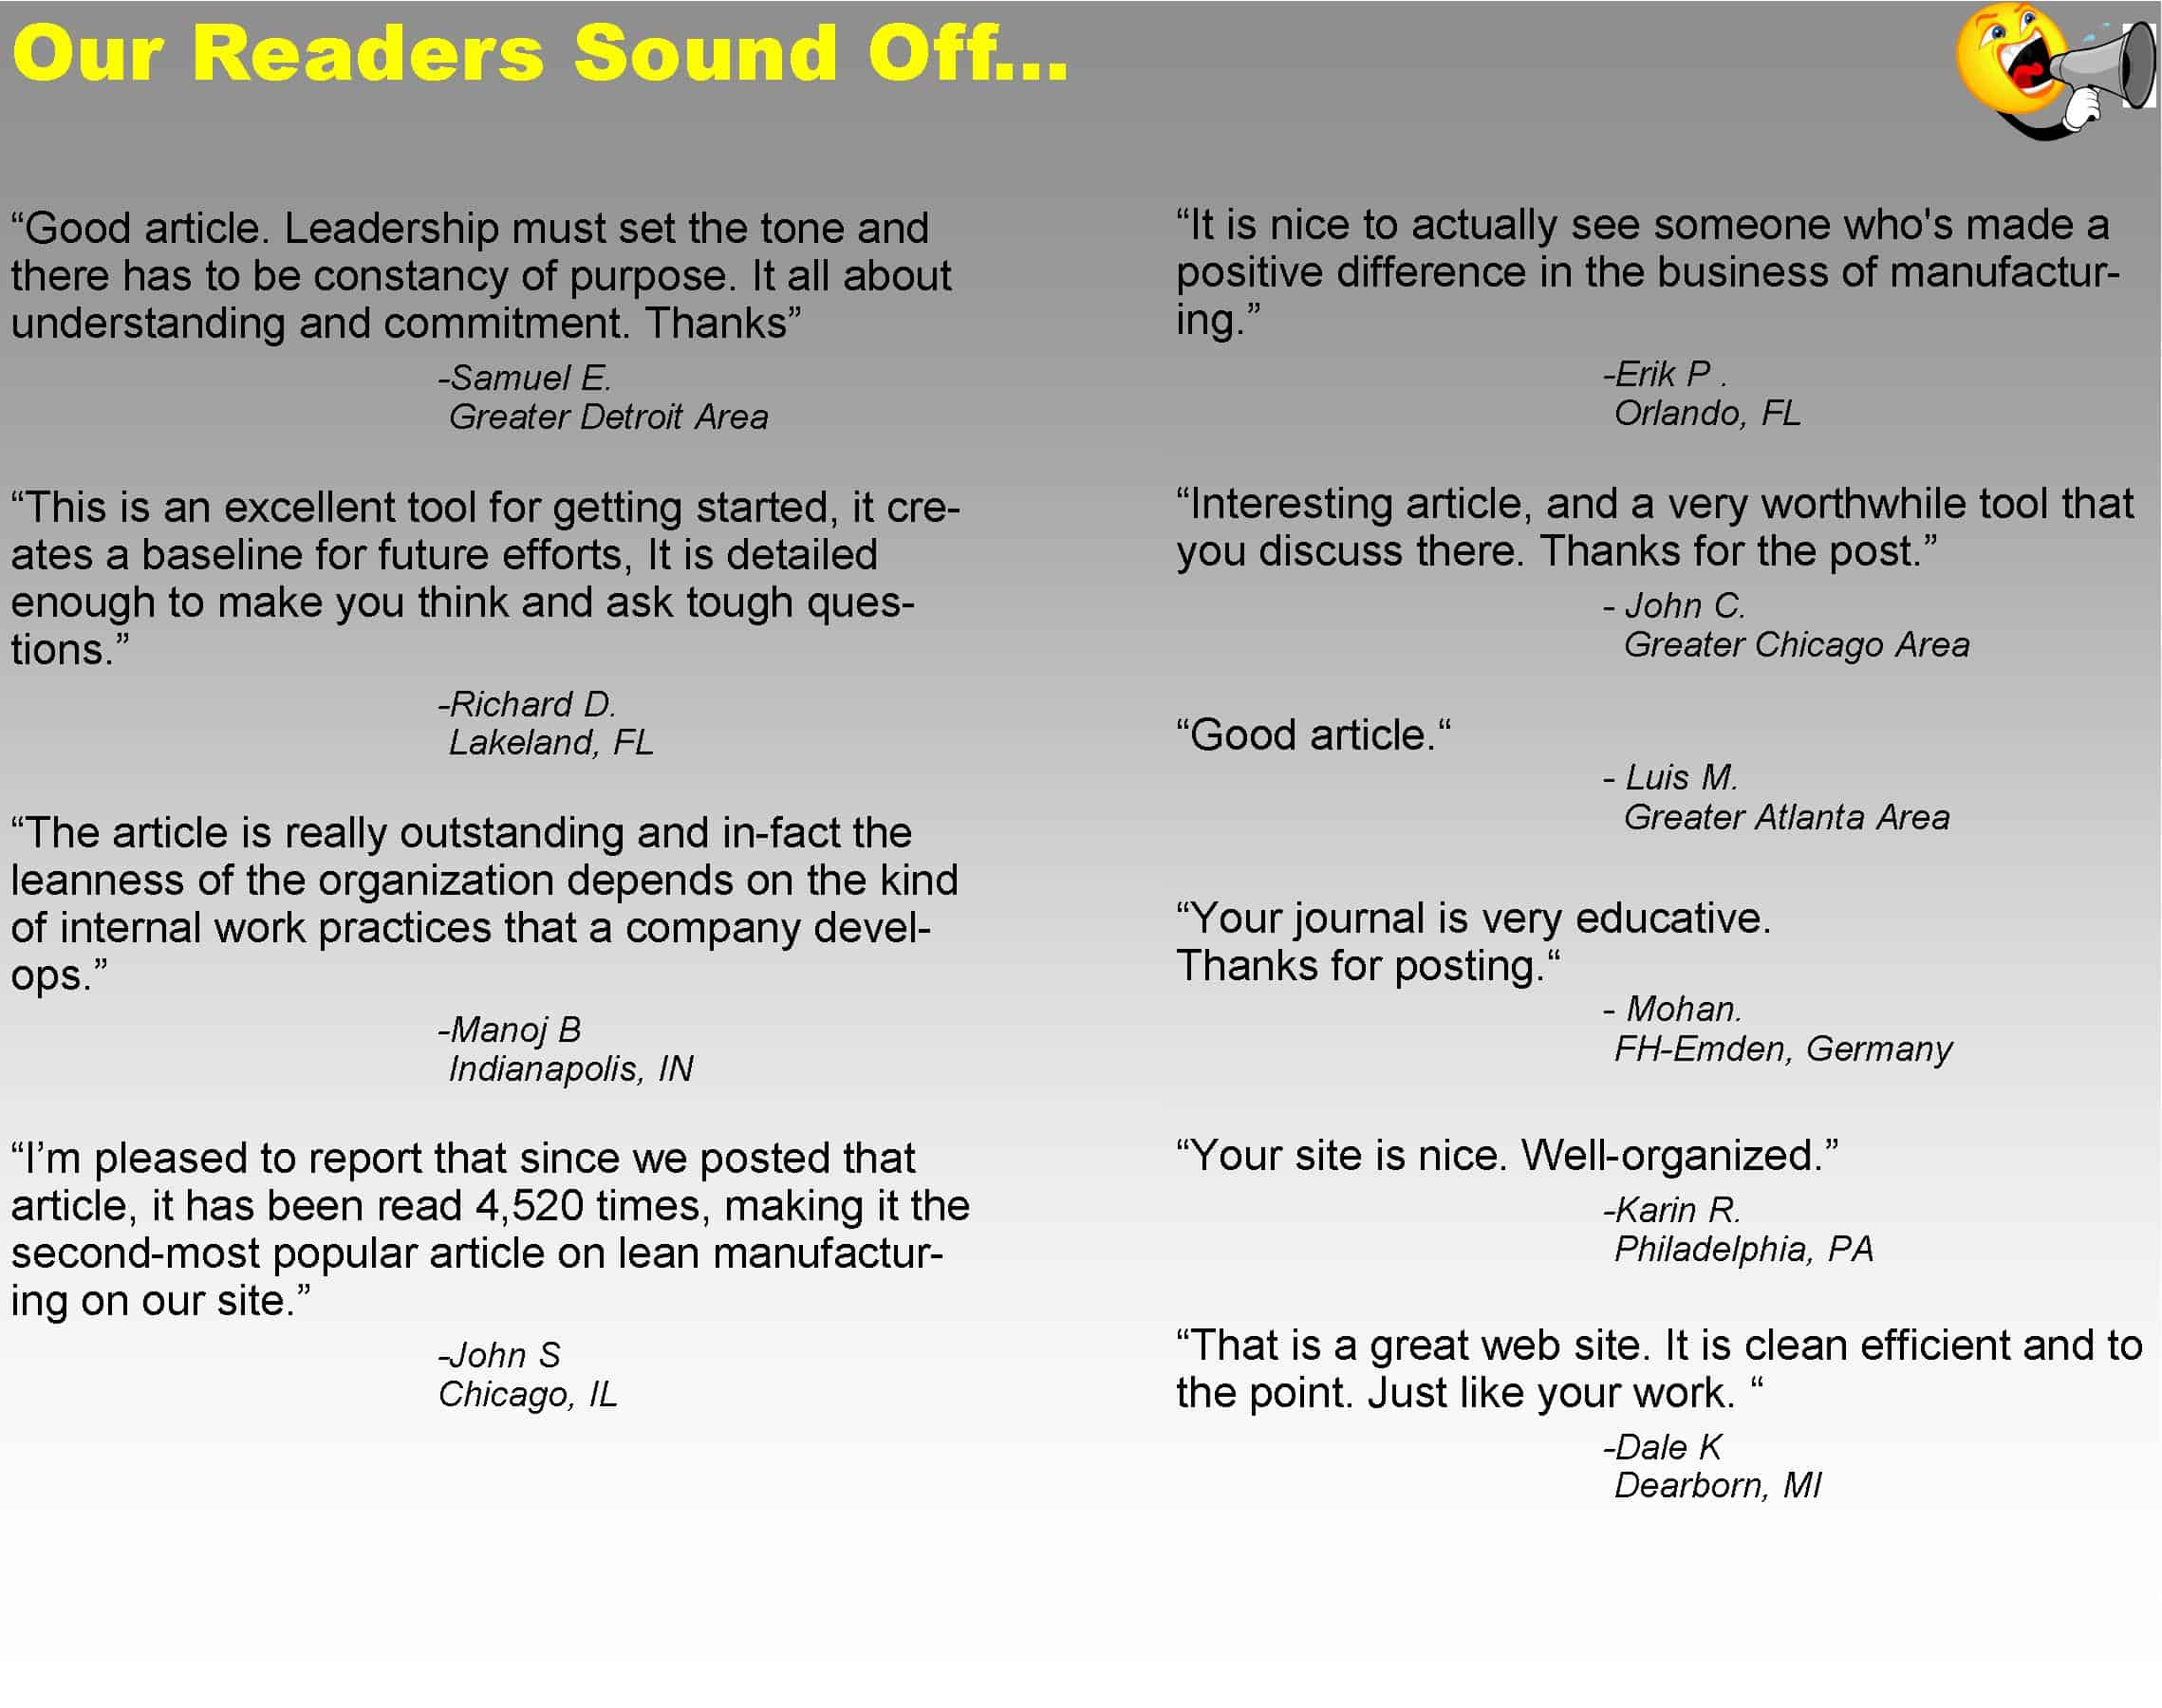 Our Readers Sound Off Quotes